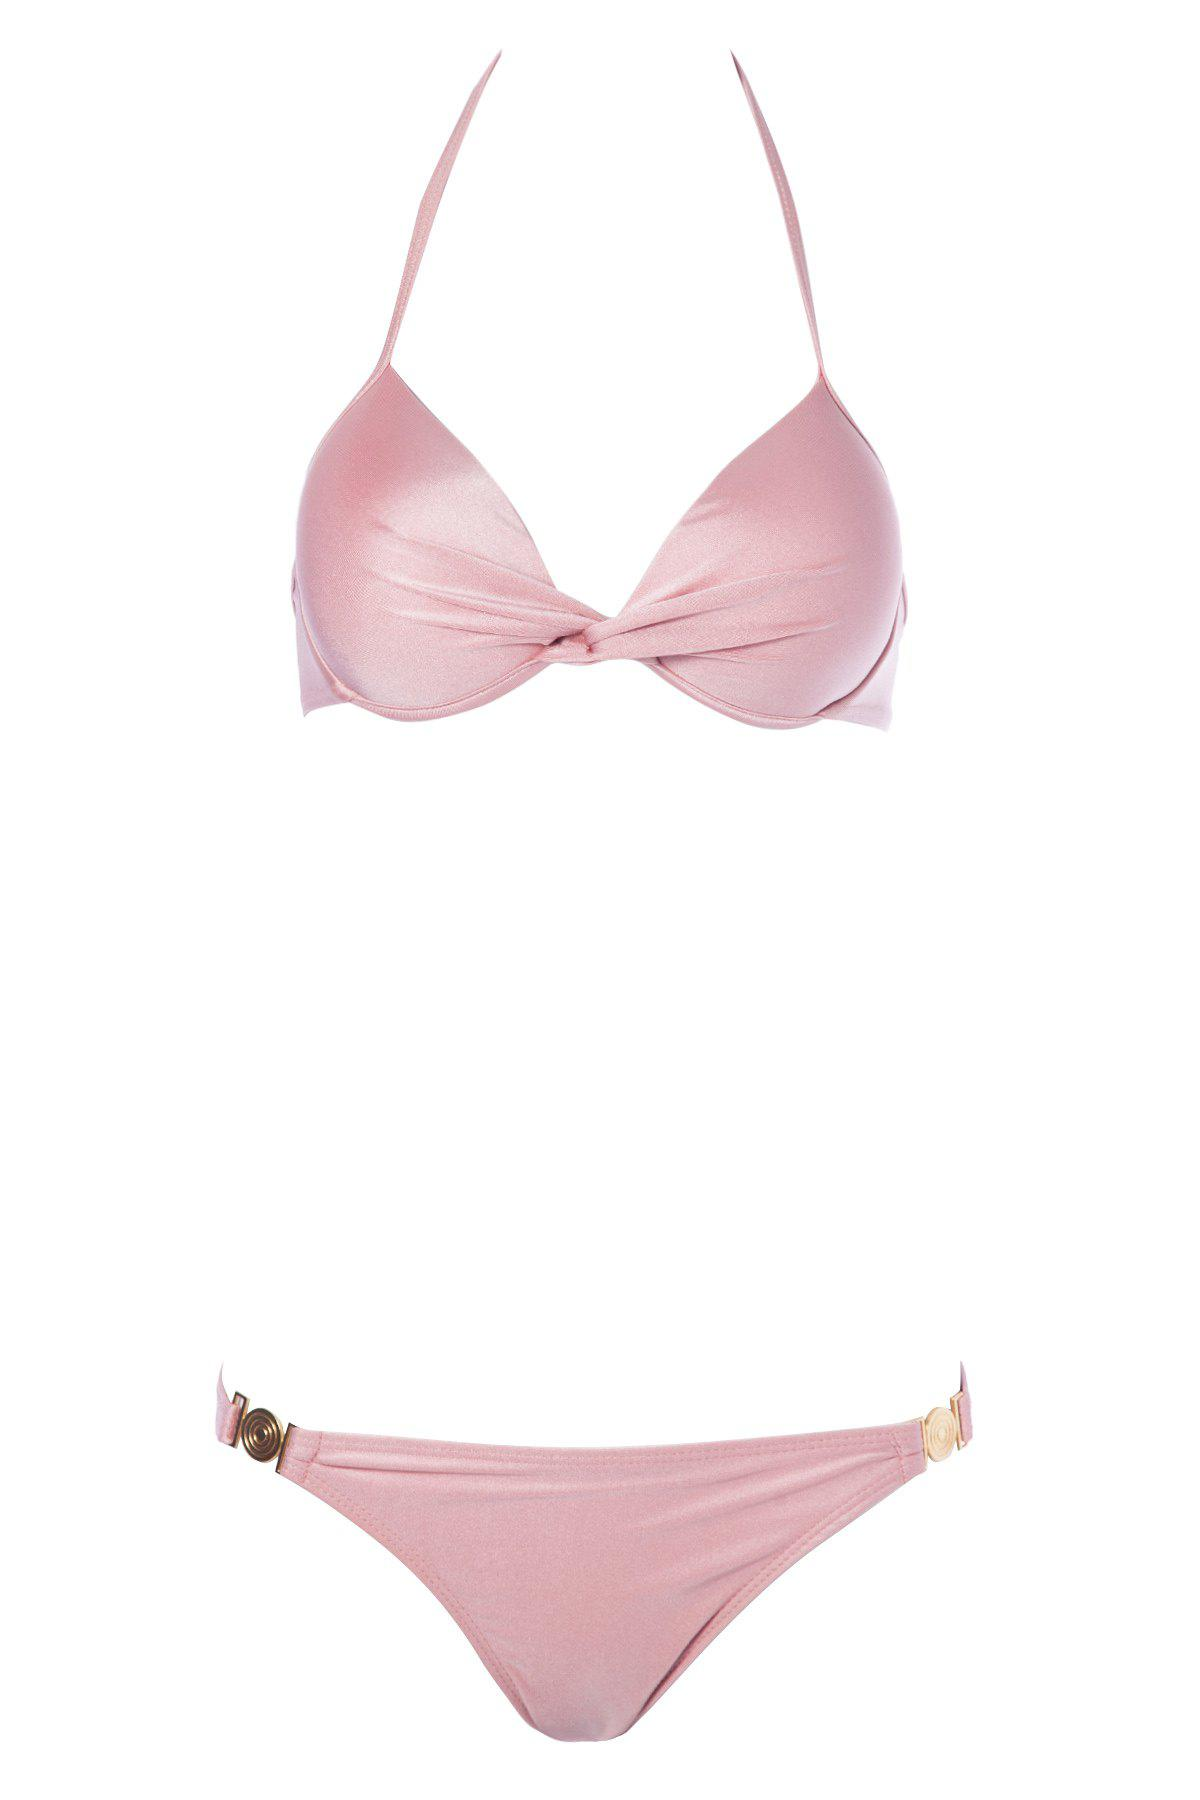 Sexy Push-Up Solid Color Bikini Halter femmes - ROSE PÂLE M